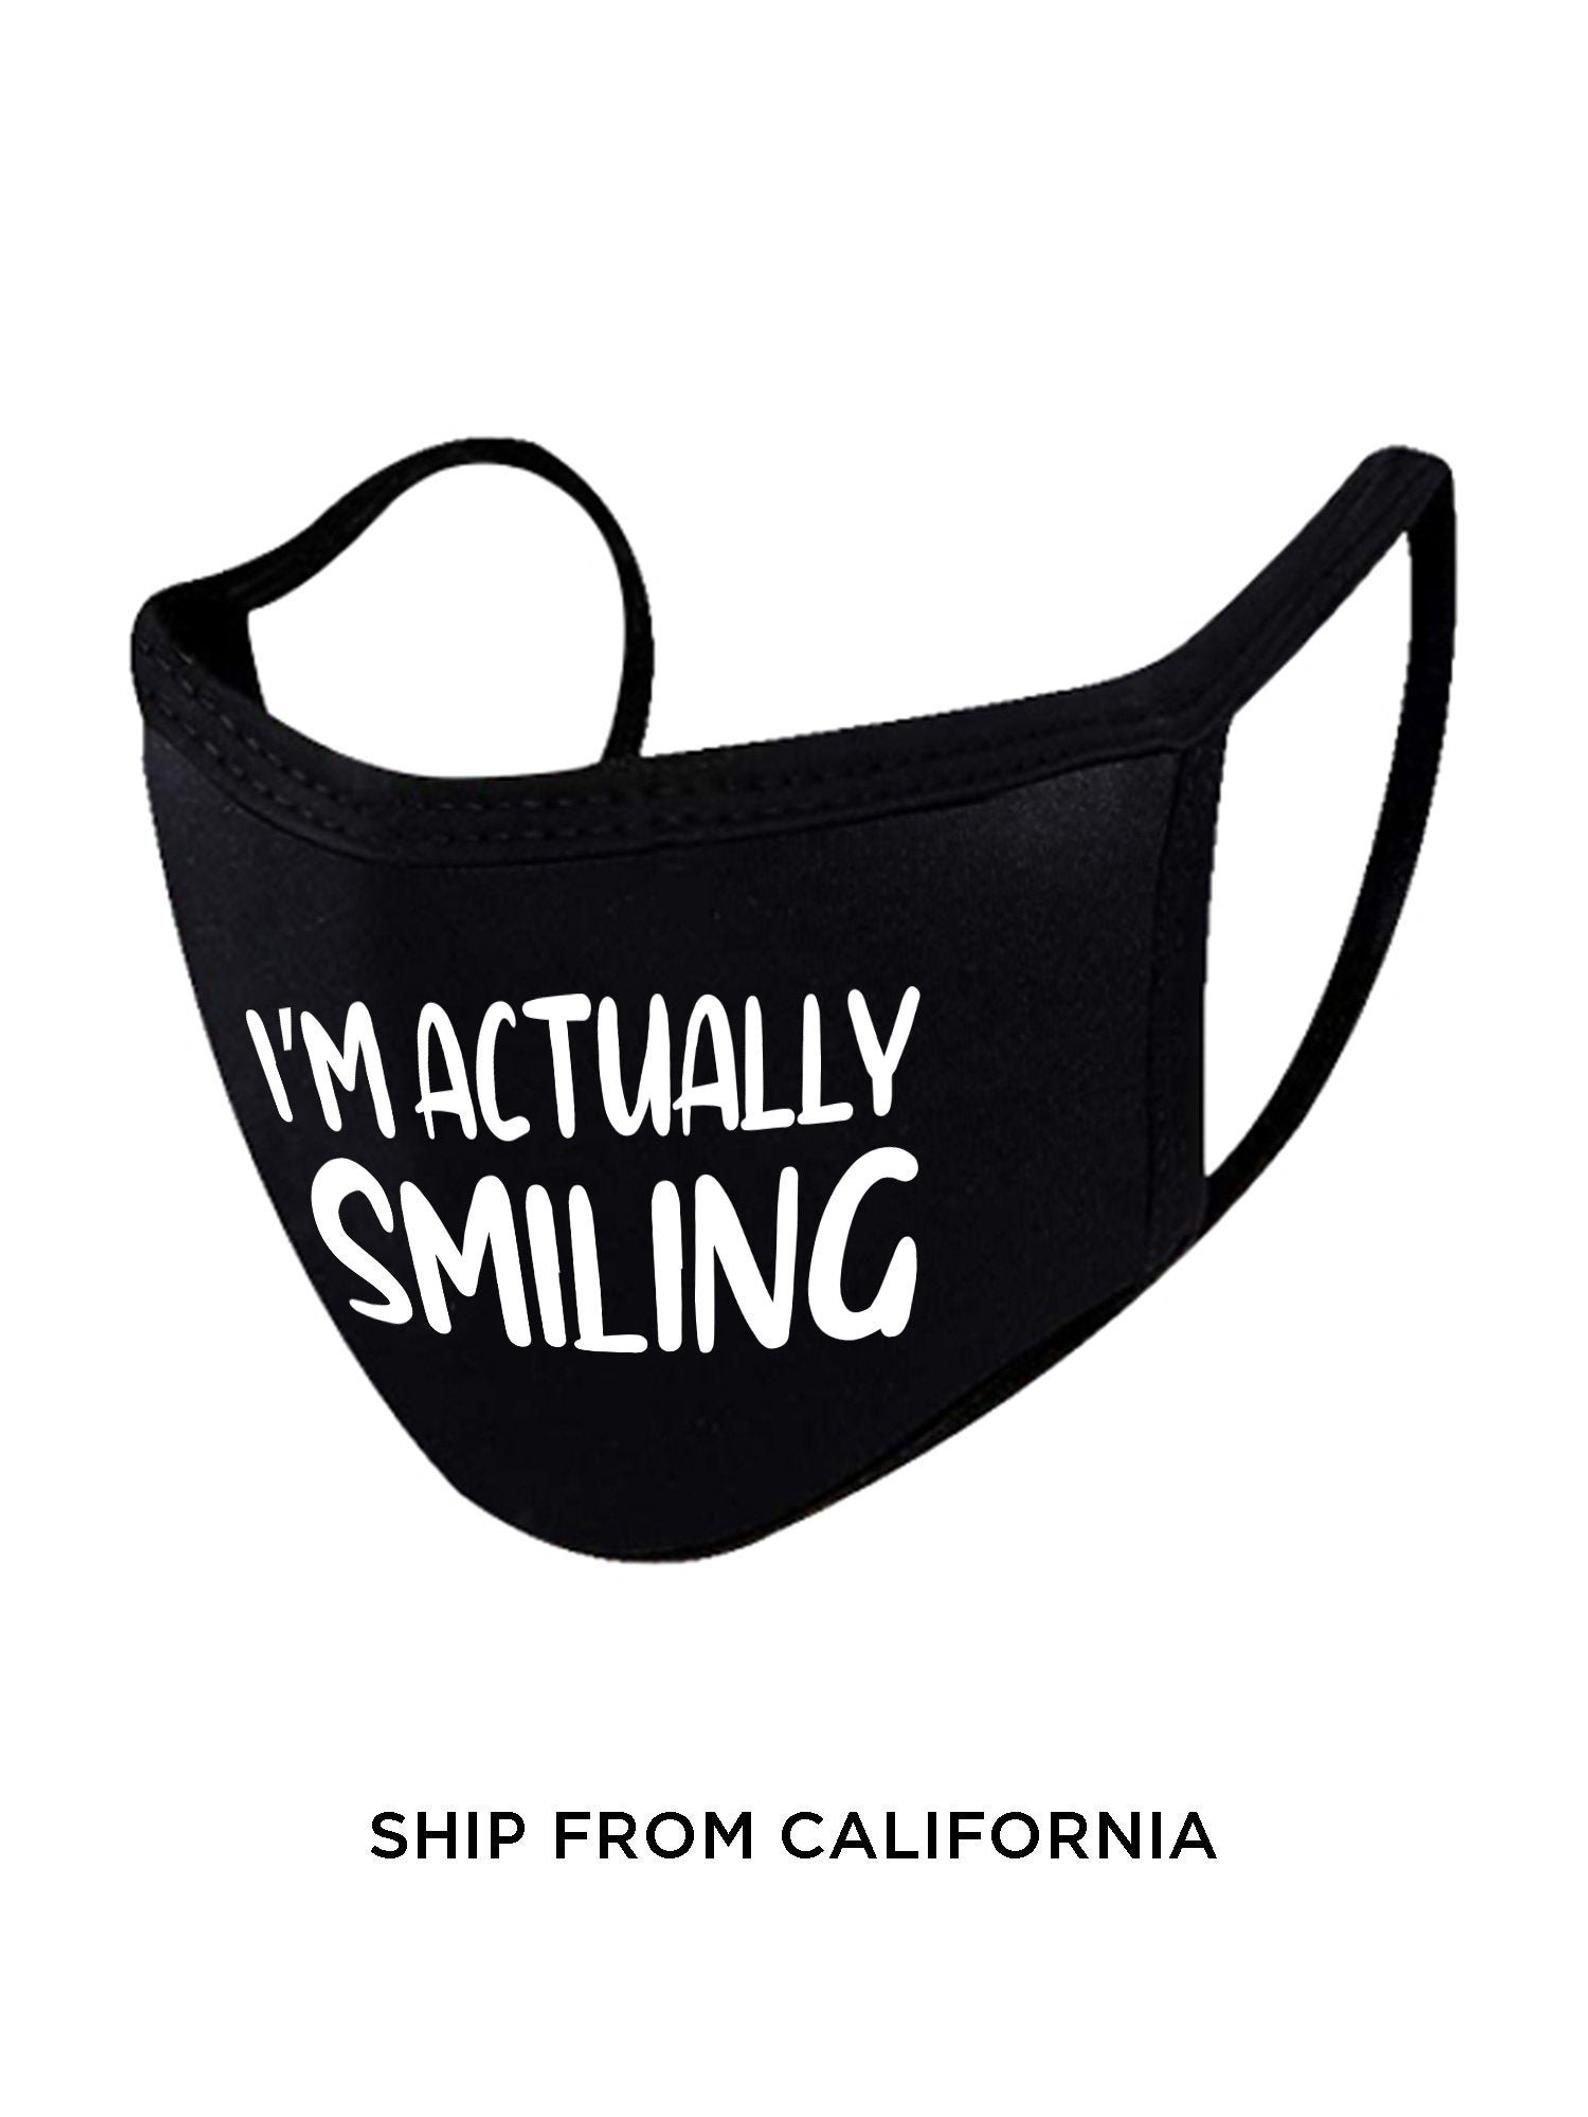 Funny Saying Face Mask Cute Quote Face Mask Funny Face Mask Etsy In 2021 Funny Face Mask Face Mask Cute Face Mask